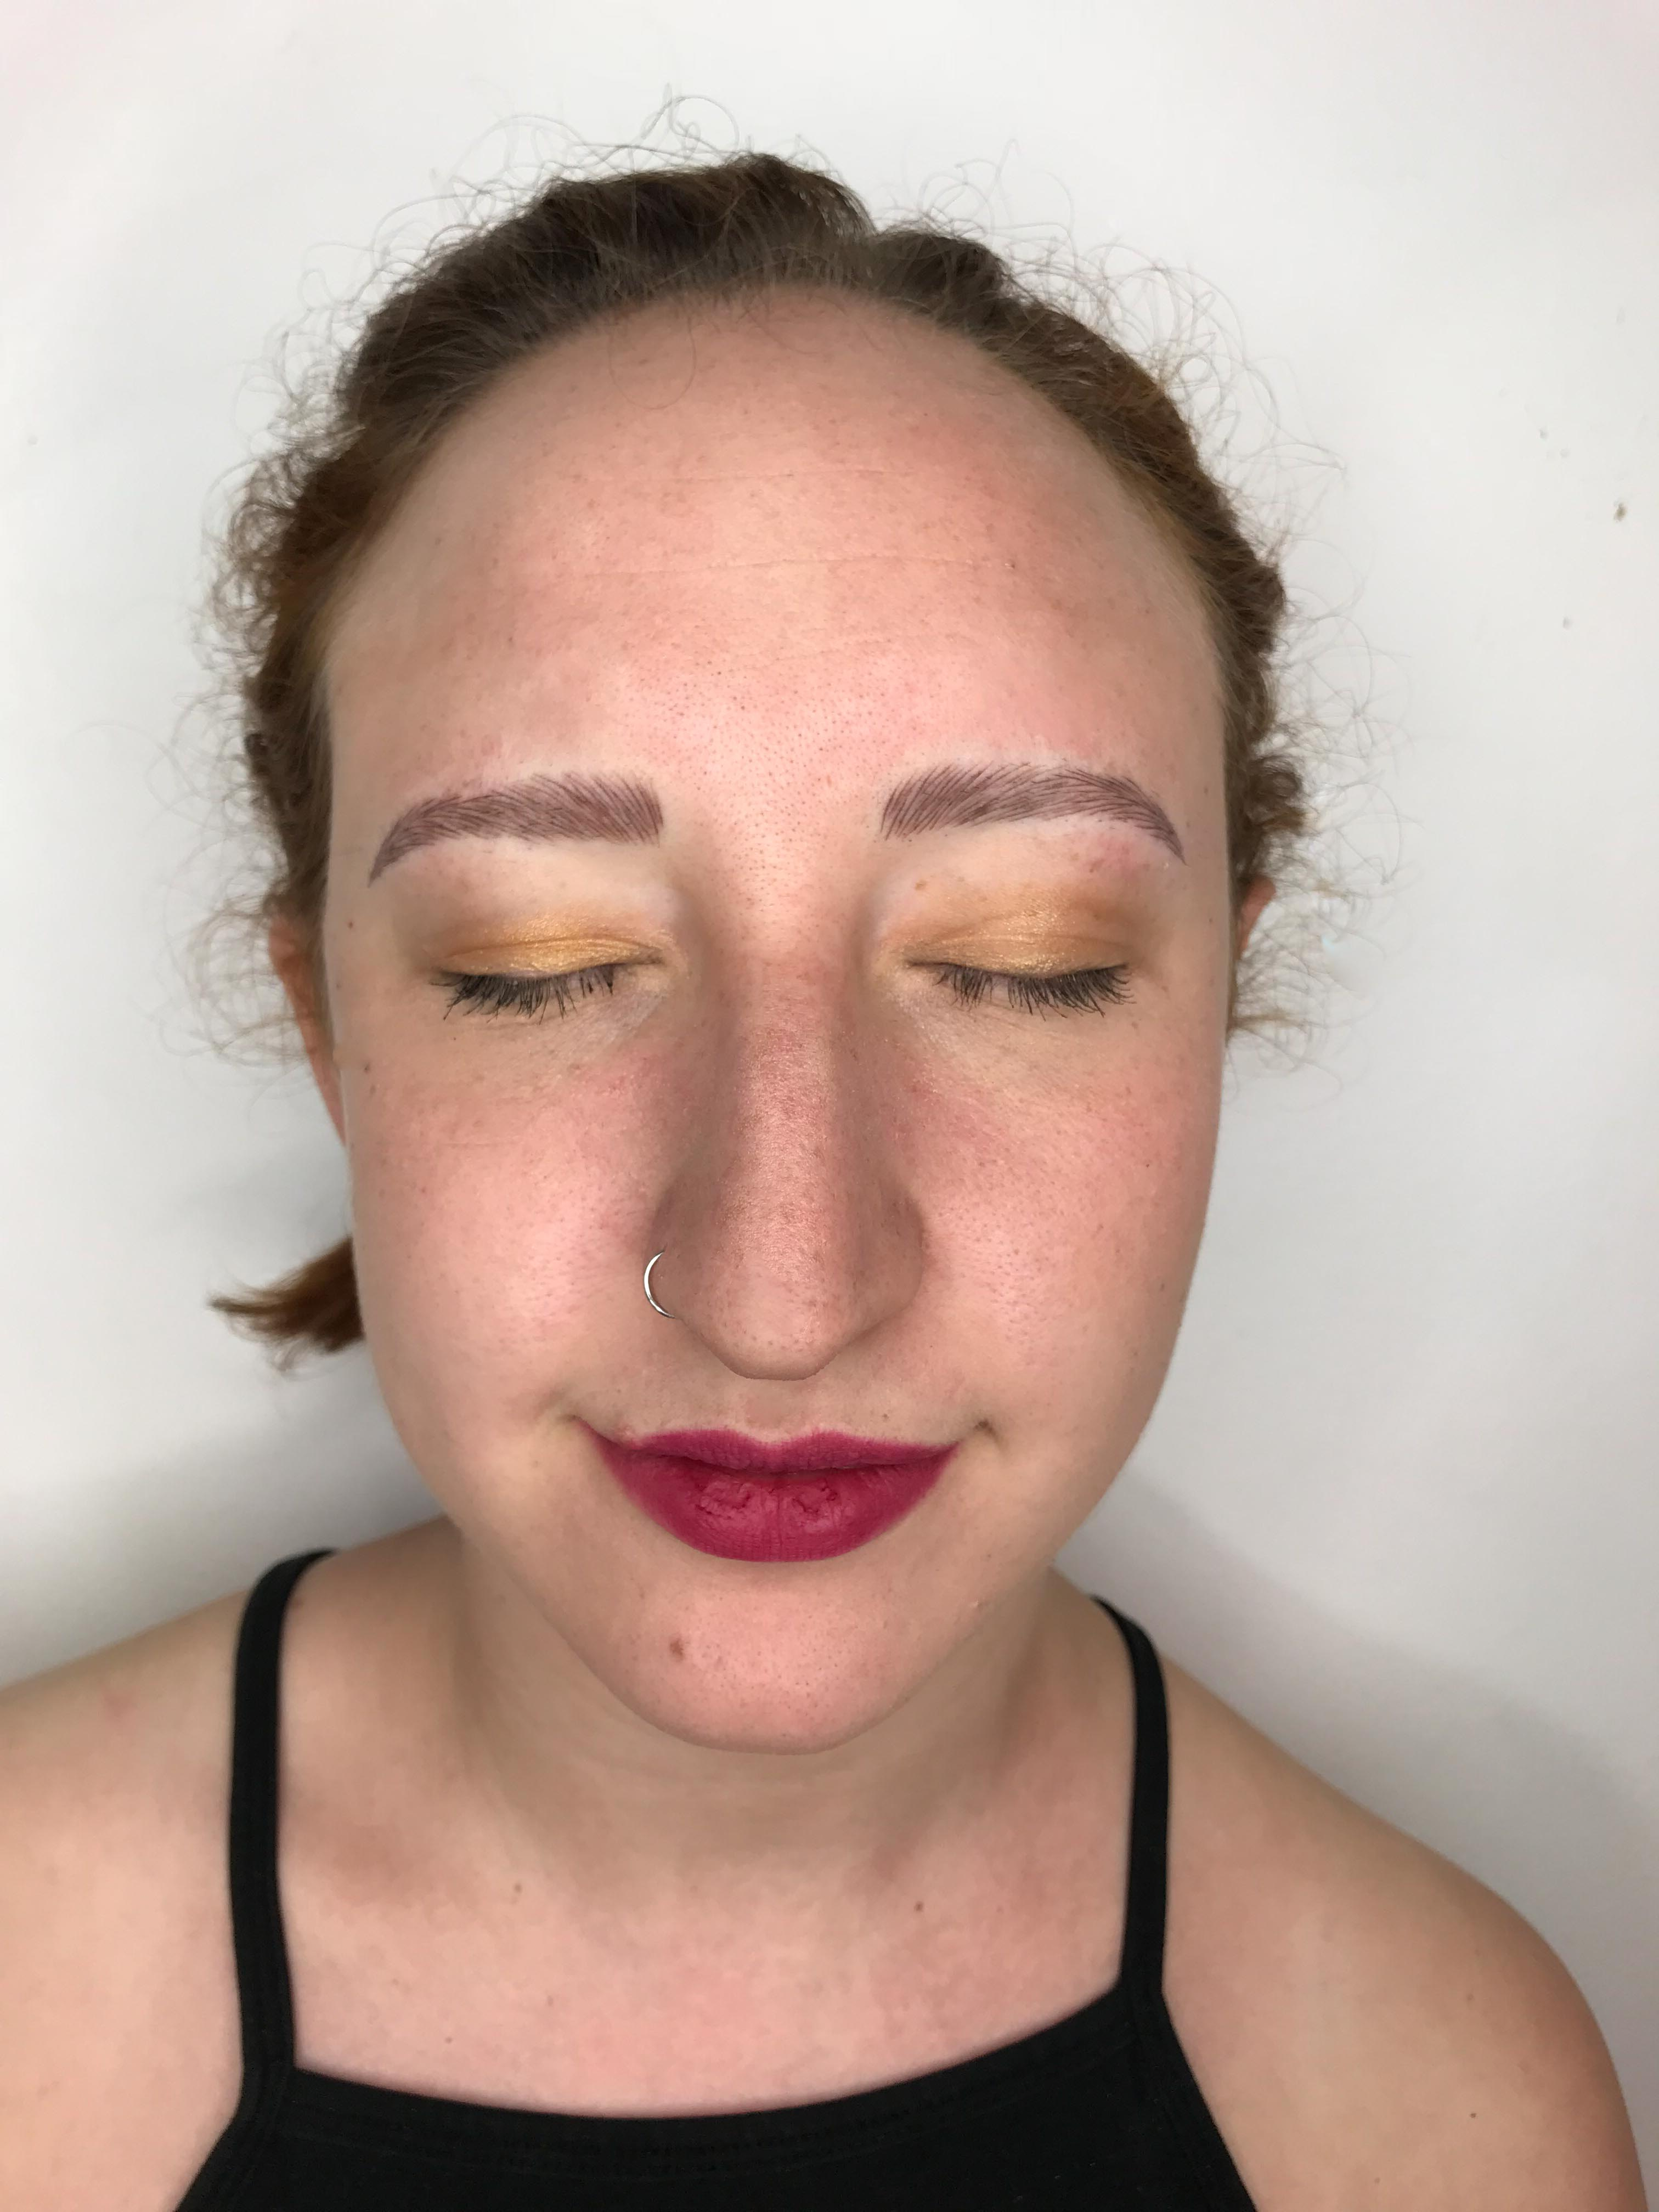 How Microblading Helped With My Trichotillomania - HelloGiggles